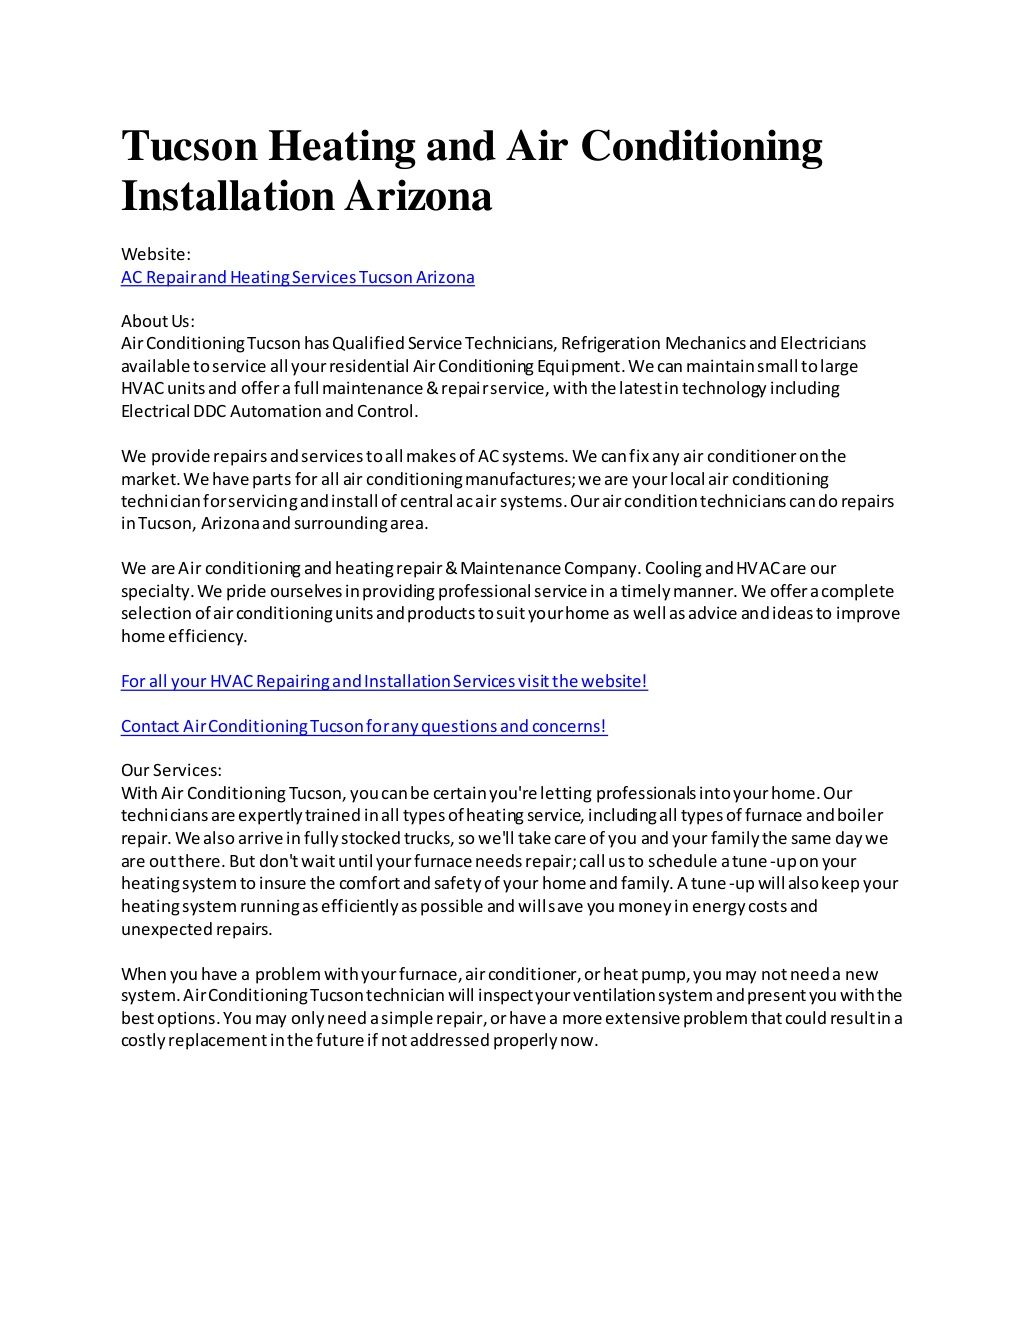 Air Conditioing Tucson By Harry Cambell Via Slideshare Air